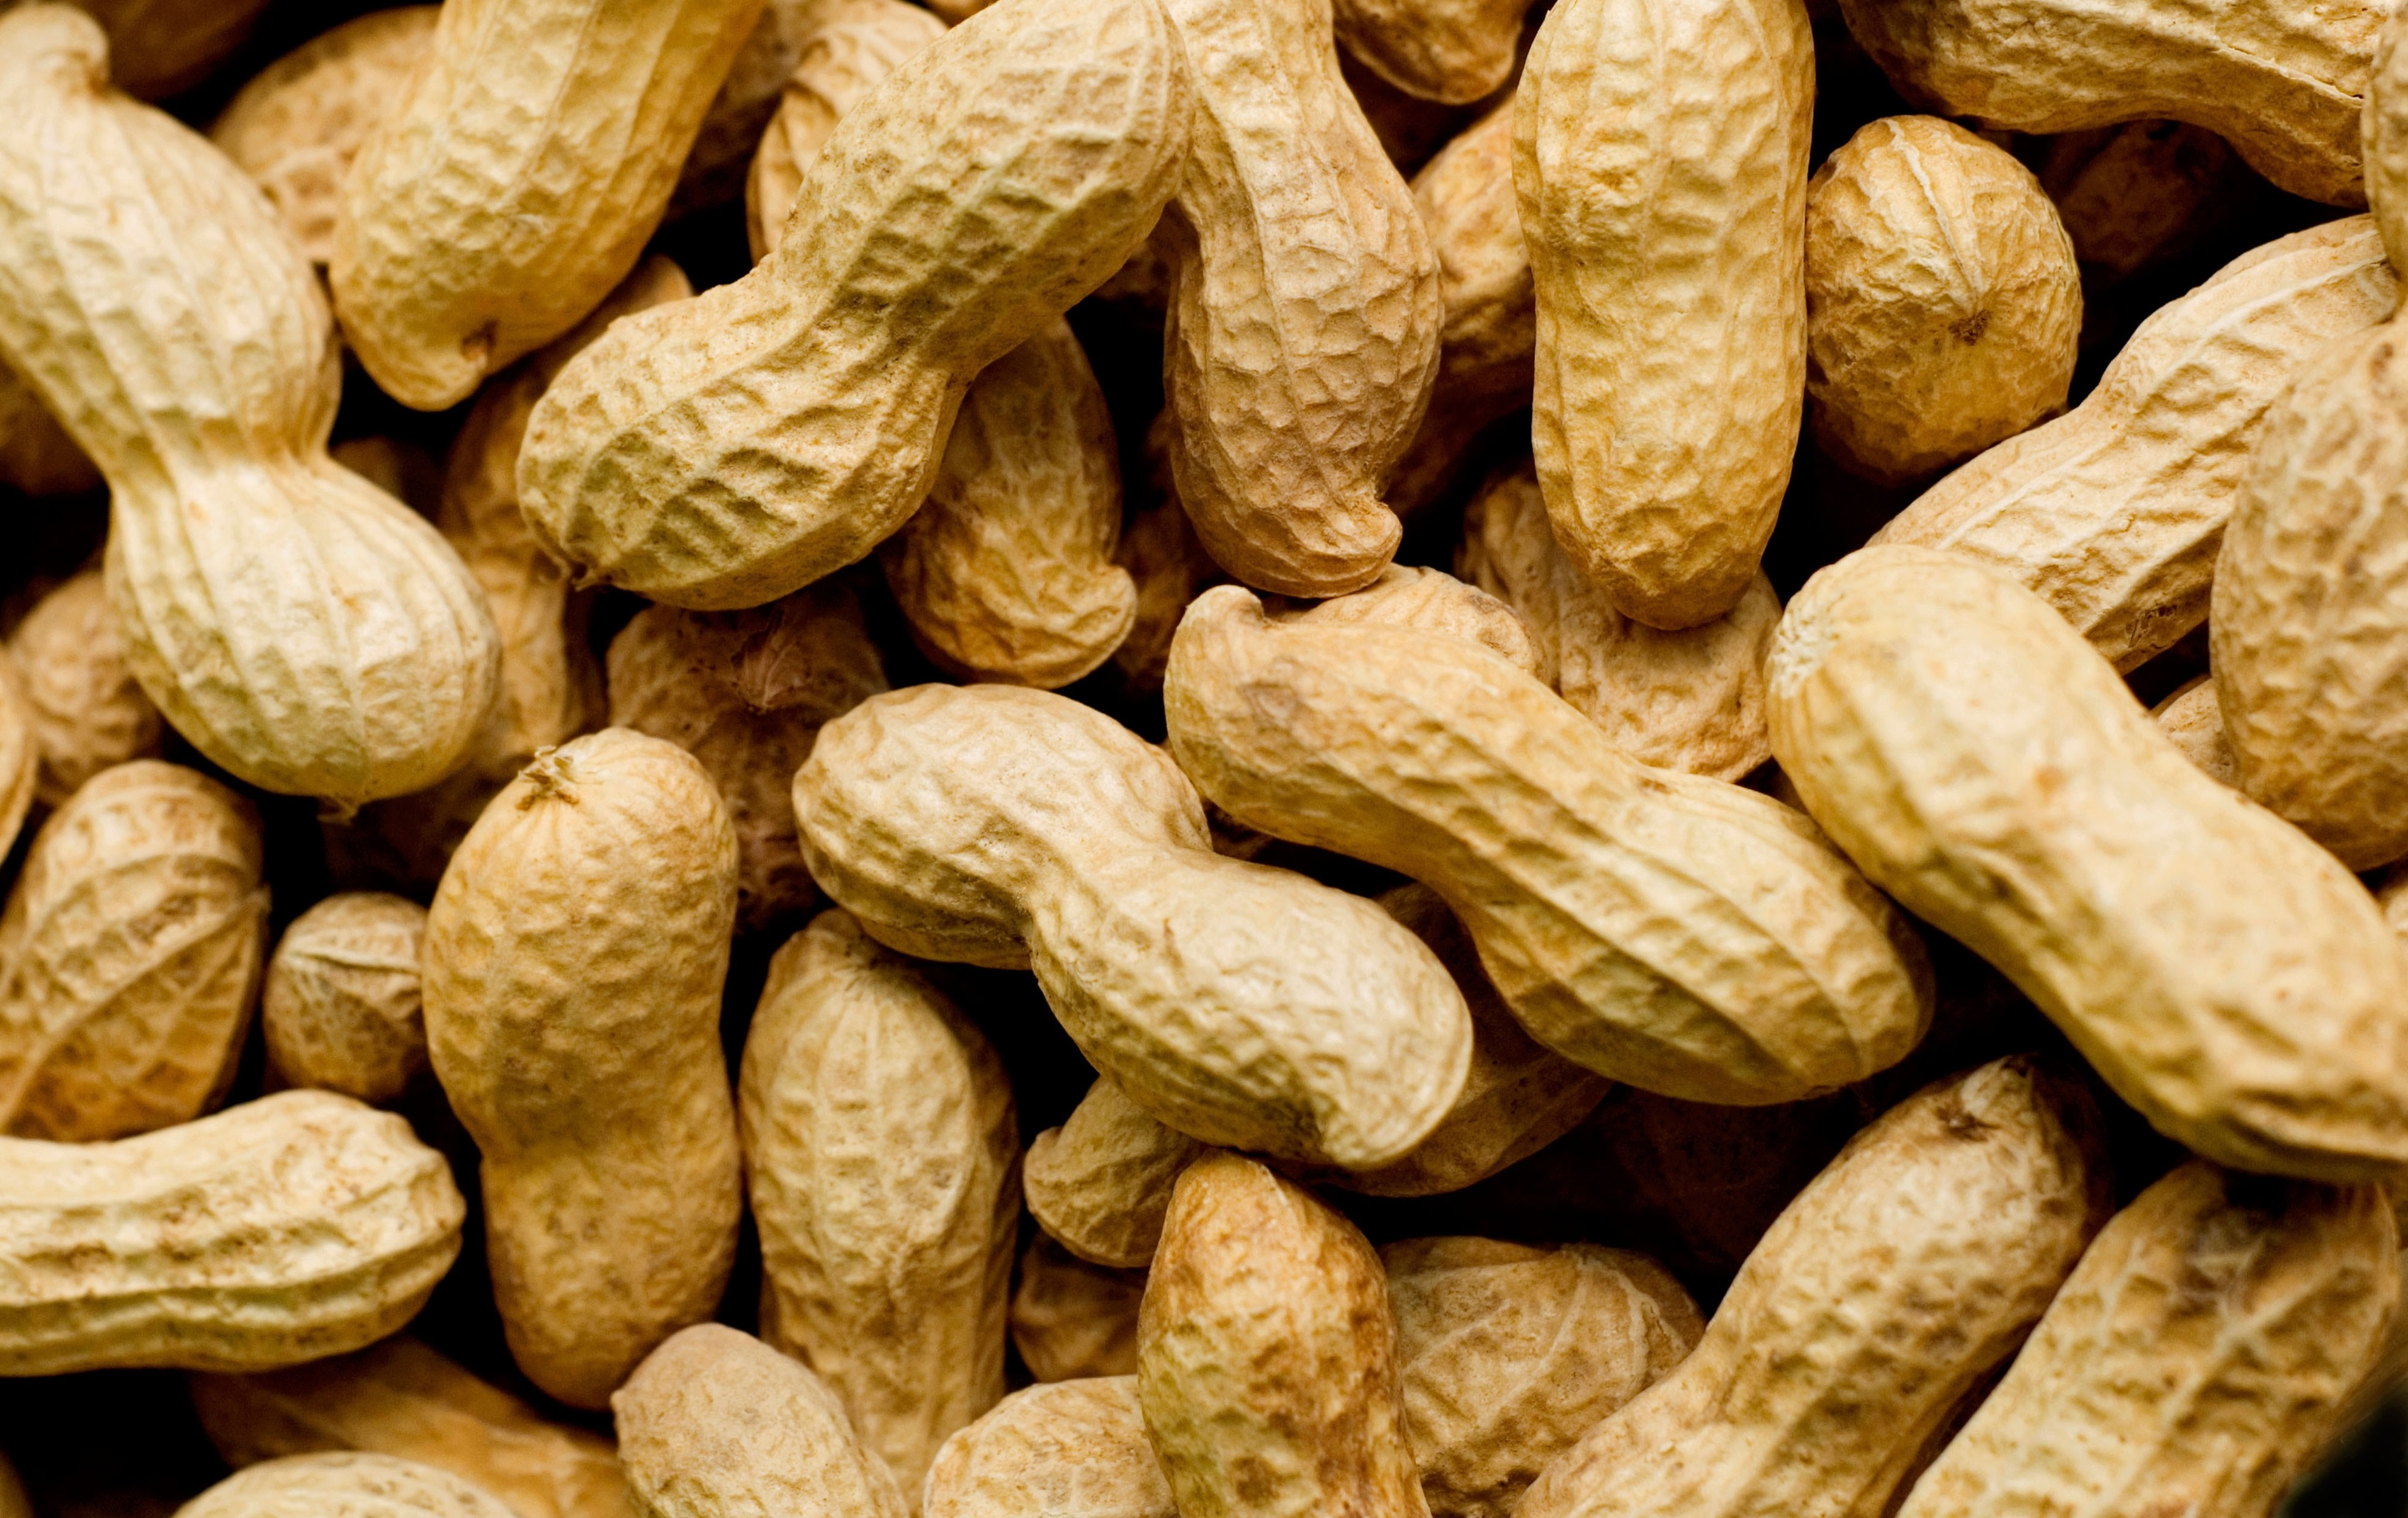 AFPD2P PEANUTS IN SHELLS SOFT LIGHT. Image shot 06/2007. Exact date unknown.